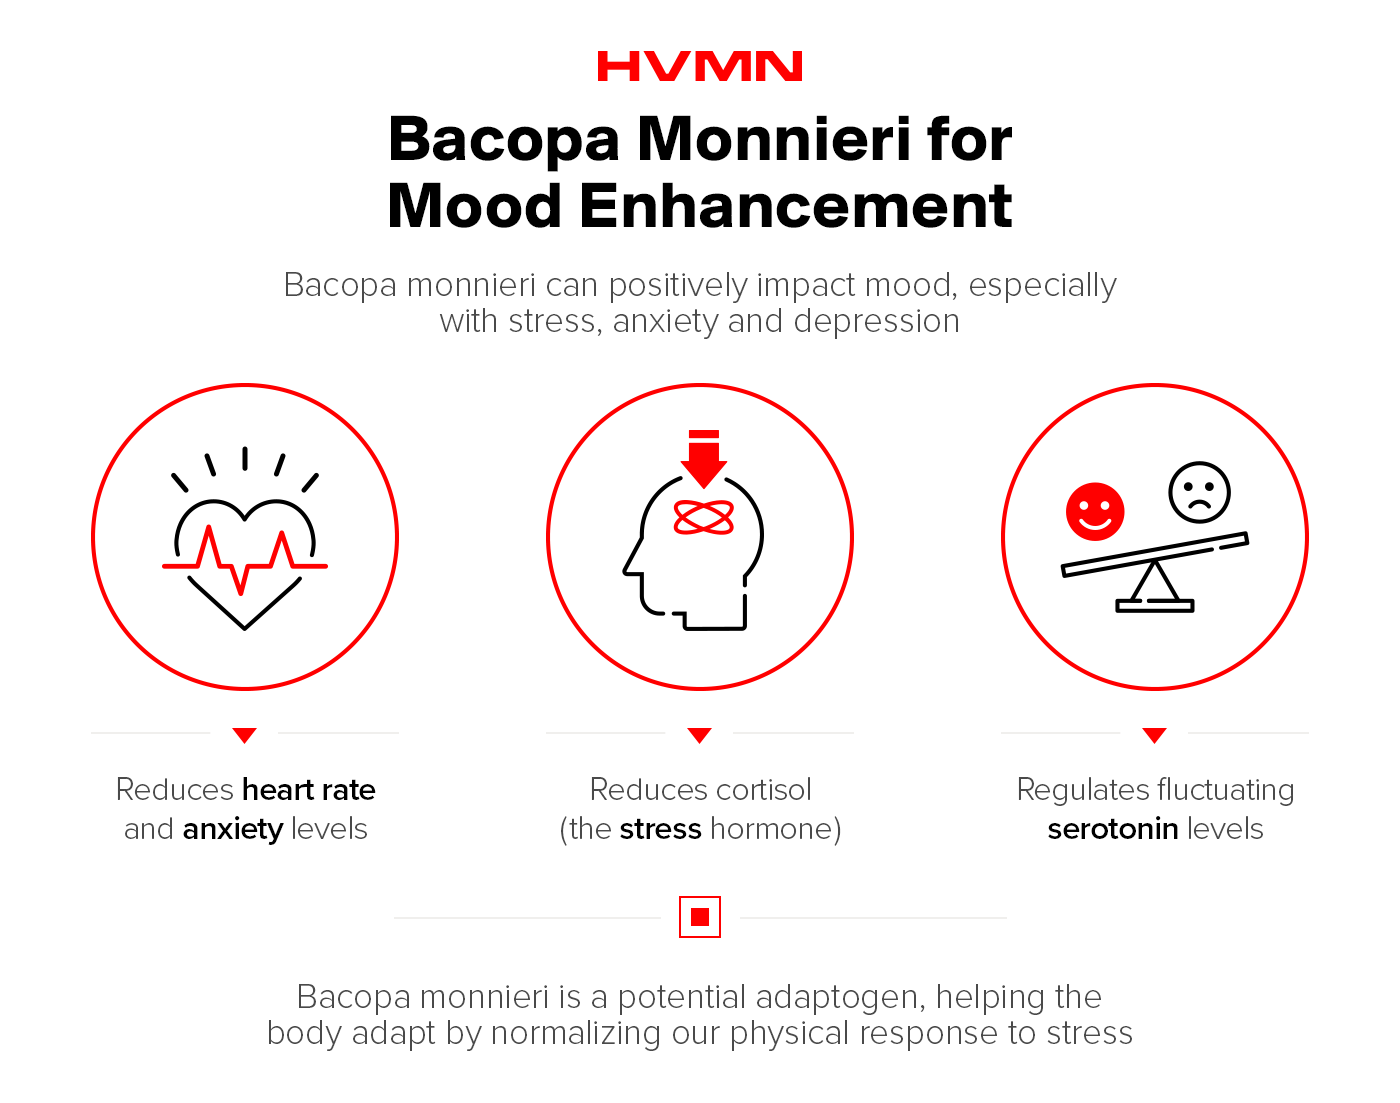 Three illustrations of a heart, a head and a scale with a happy and sad face, showing how bacopa can improve mood by decreasing stress and balancing serotonin levels